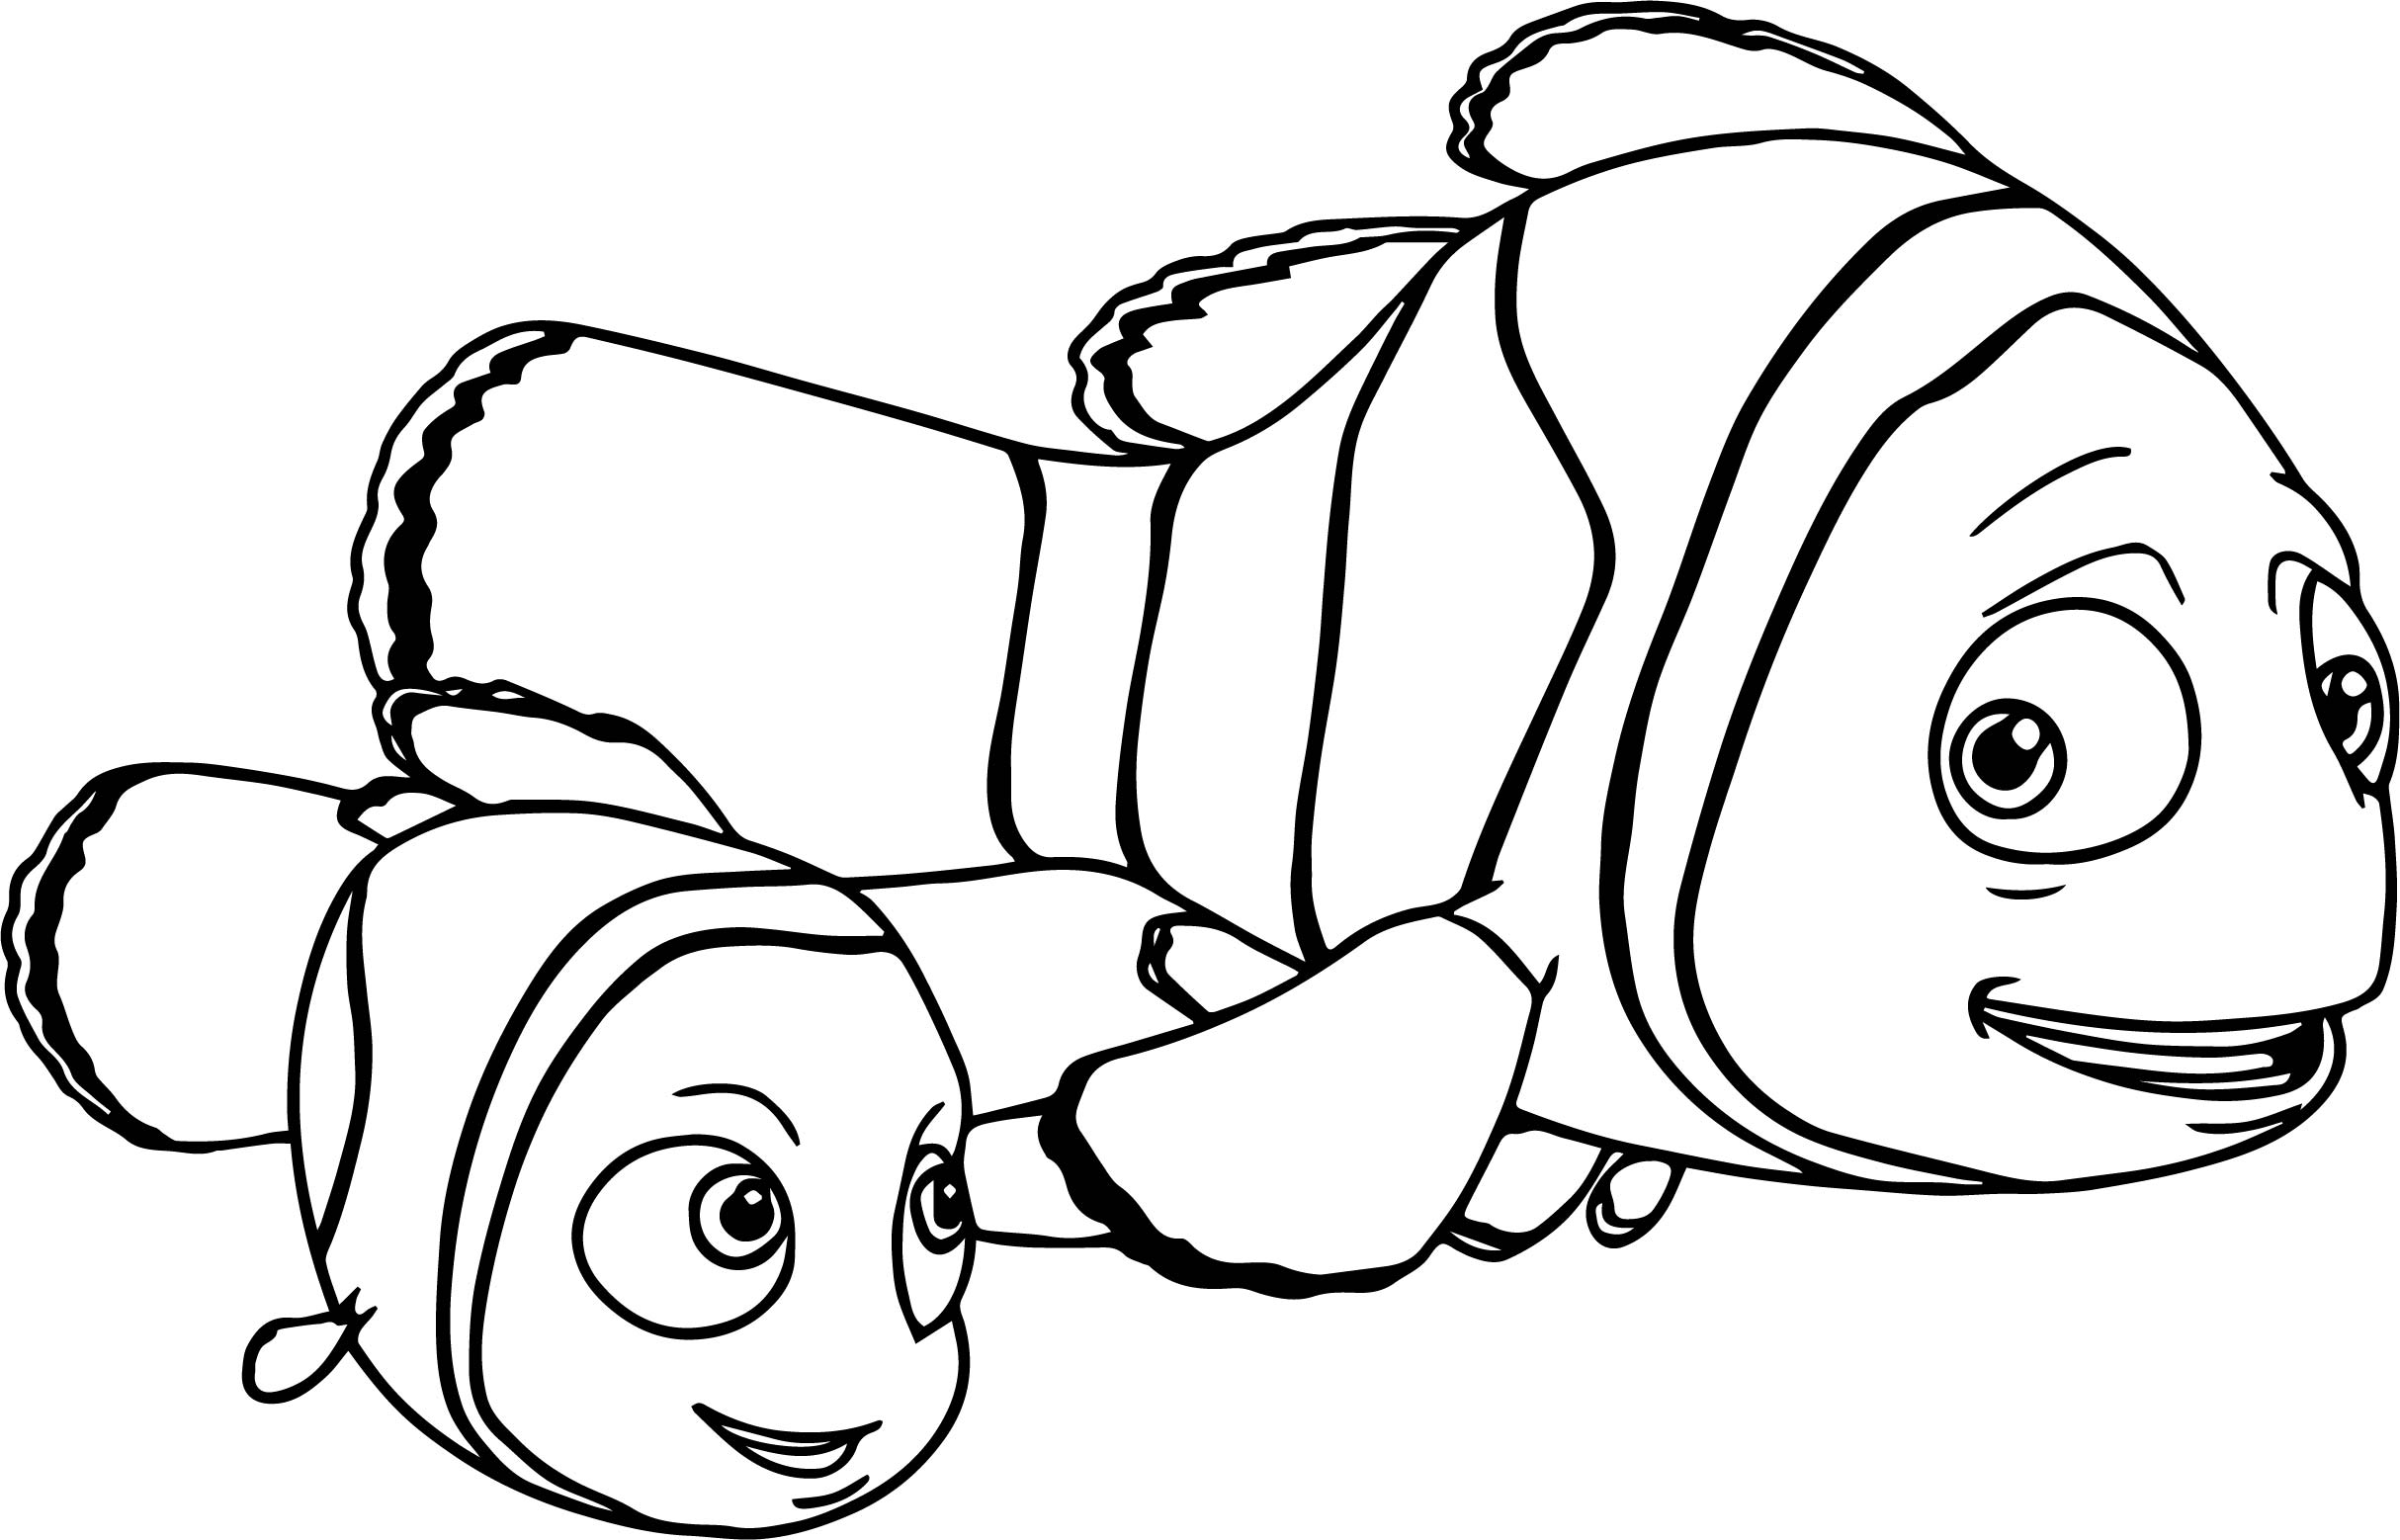 Disney Finding Nemo Marlin Nemo Coloring Pages ...